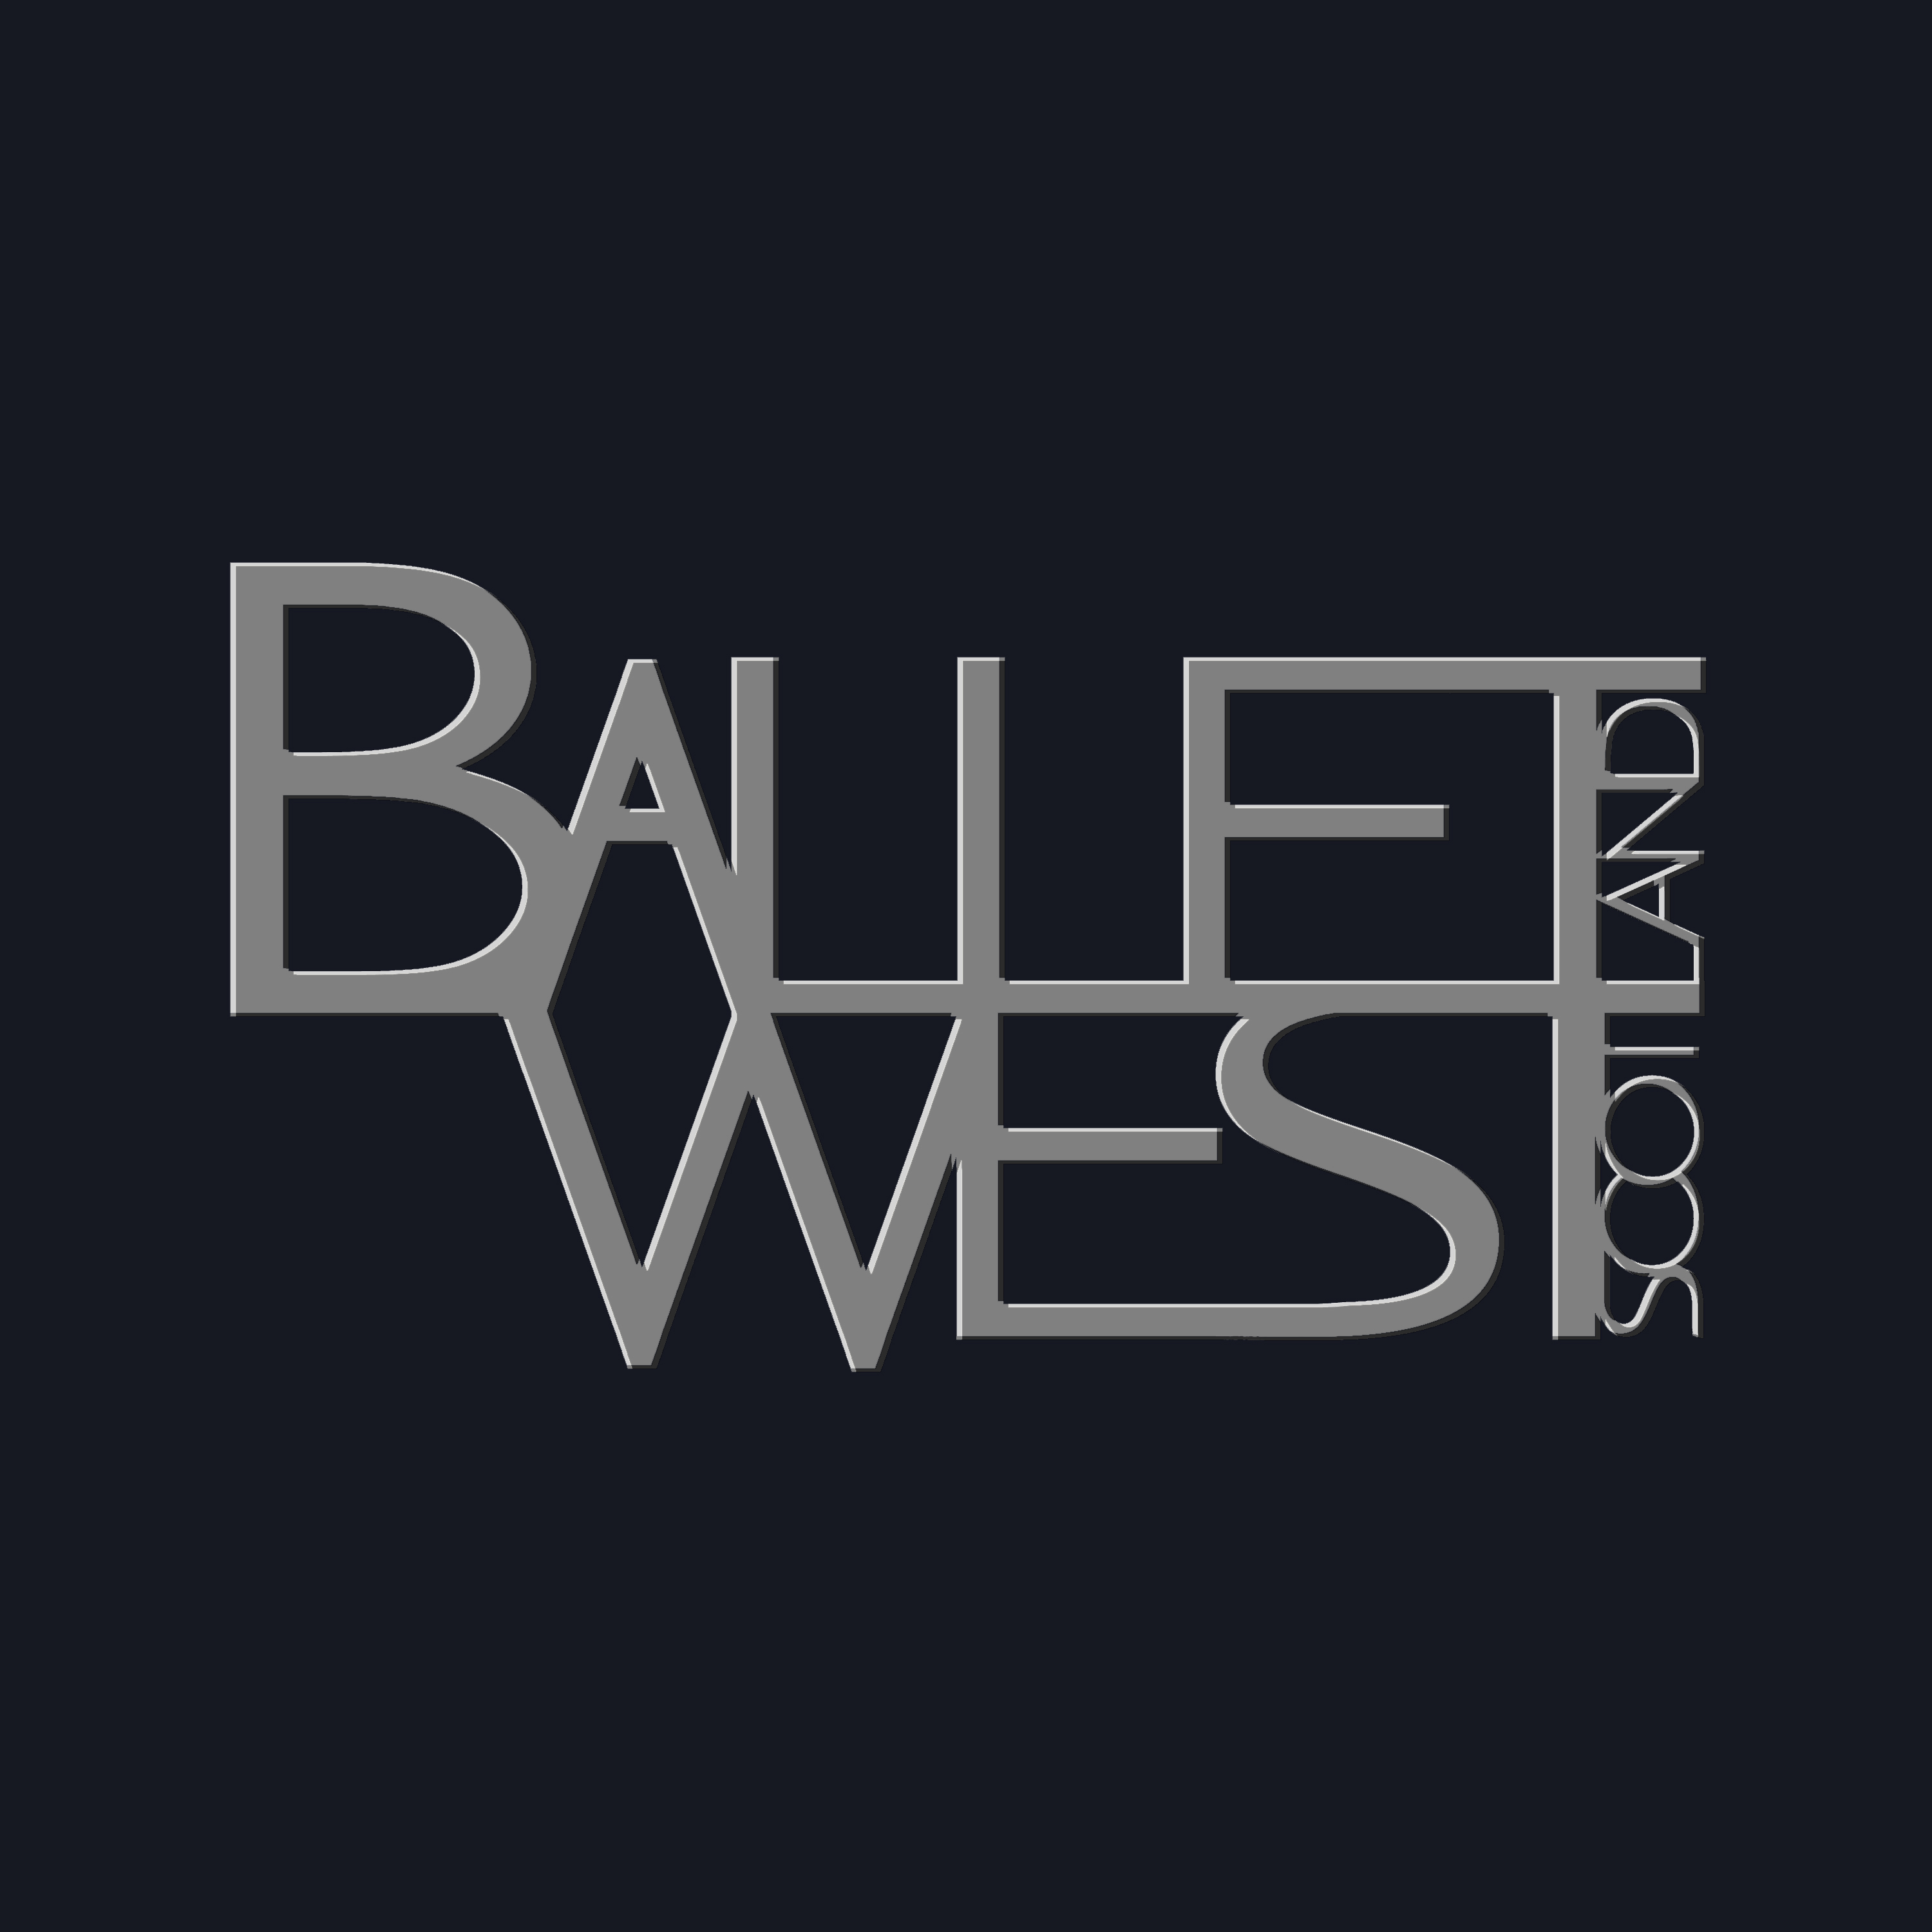 (c) Balletwest.co.uk